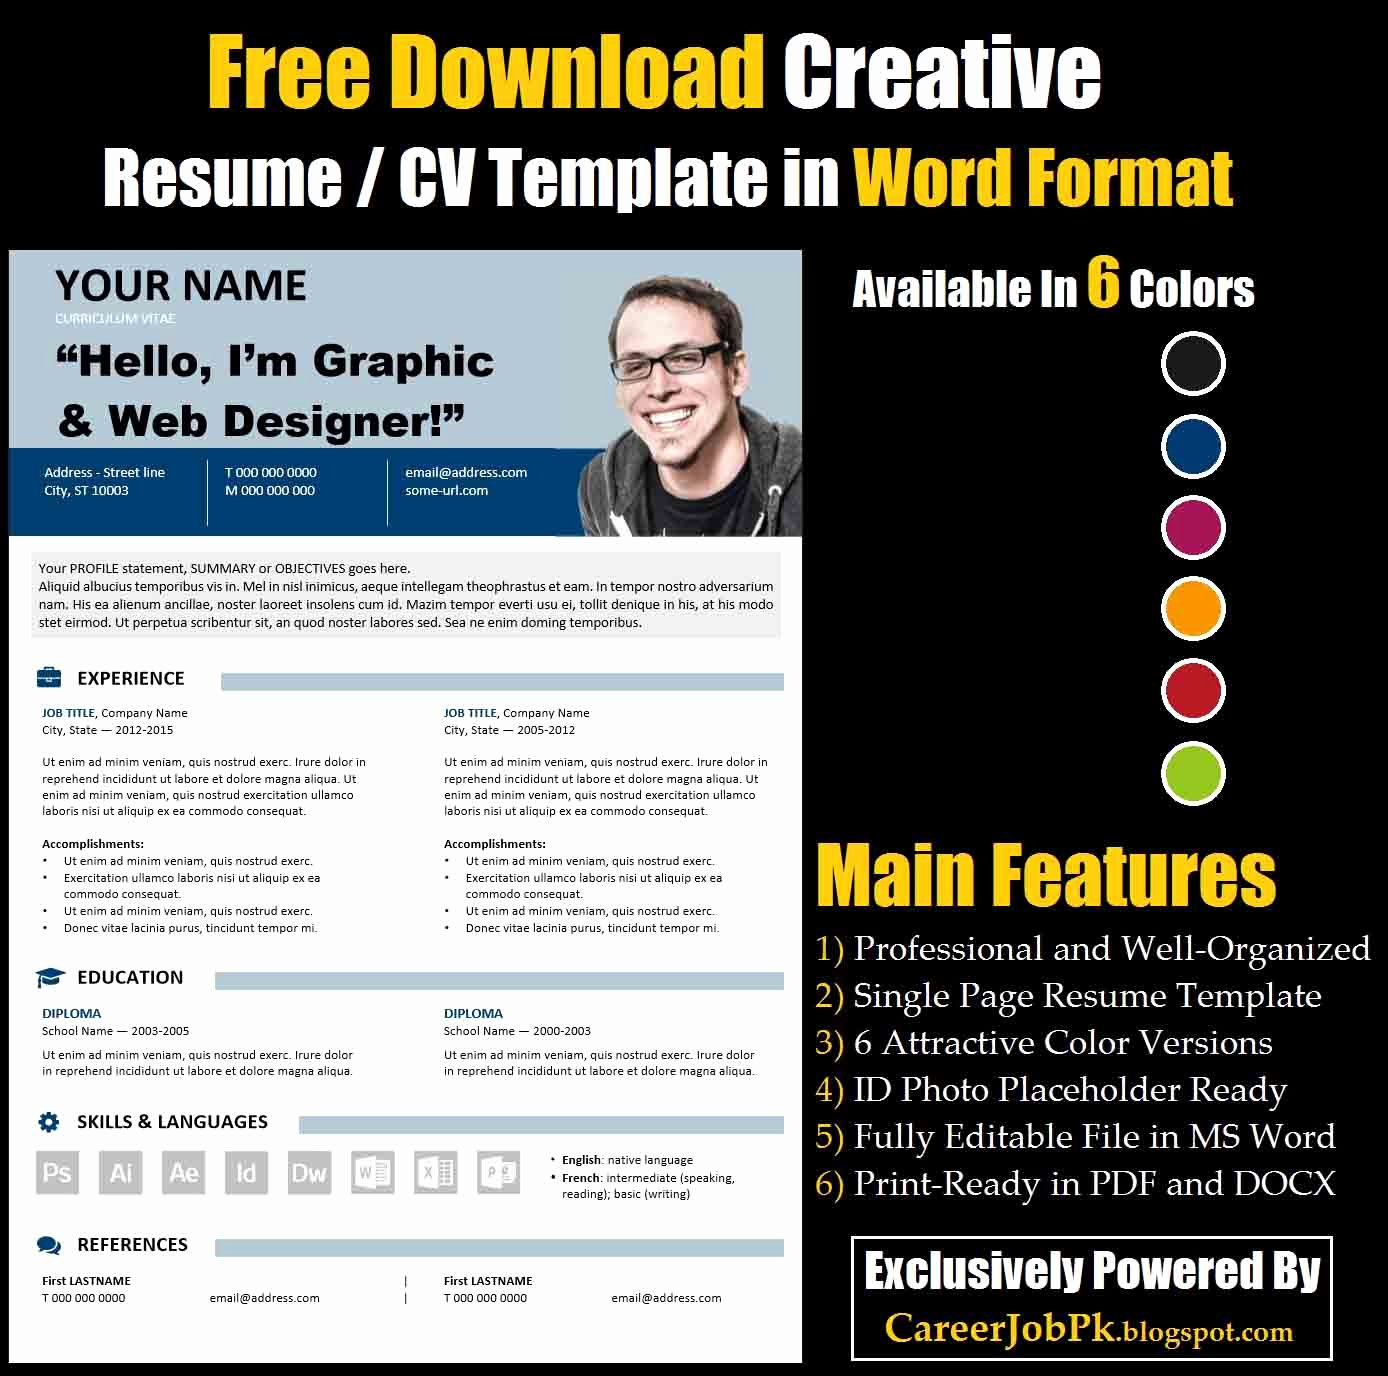 Free Creative Resume Templates Word Lovely Free Download Editable Resume Cv Template In Ms Word format